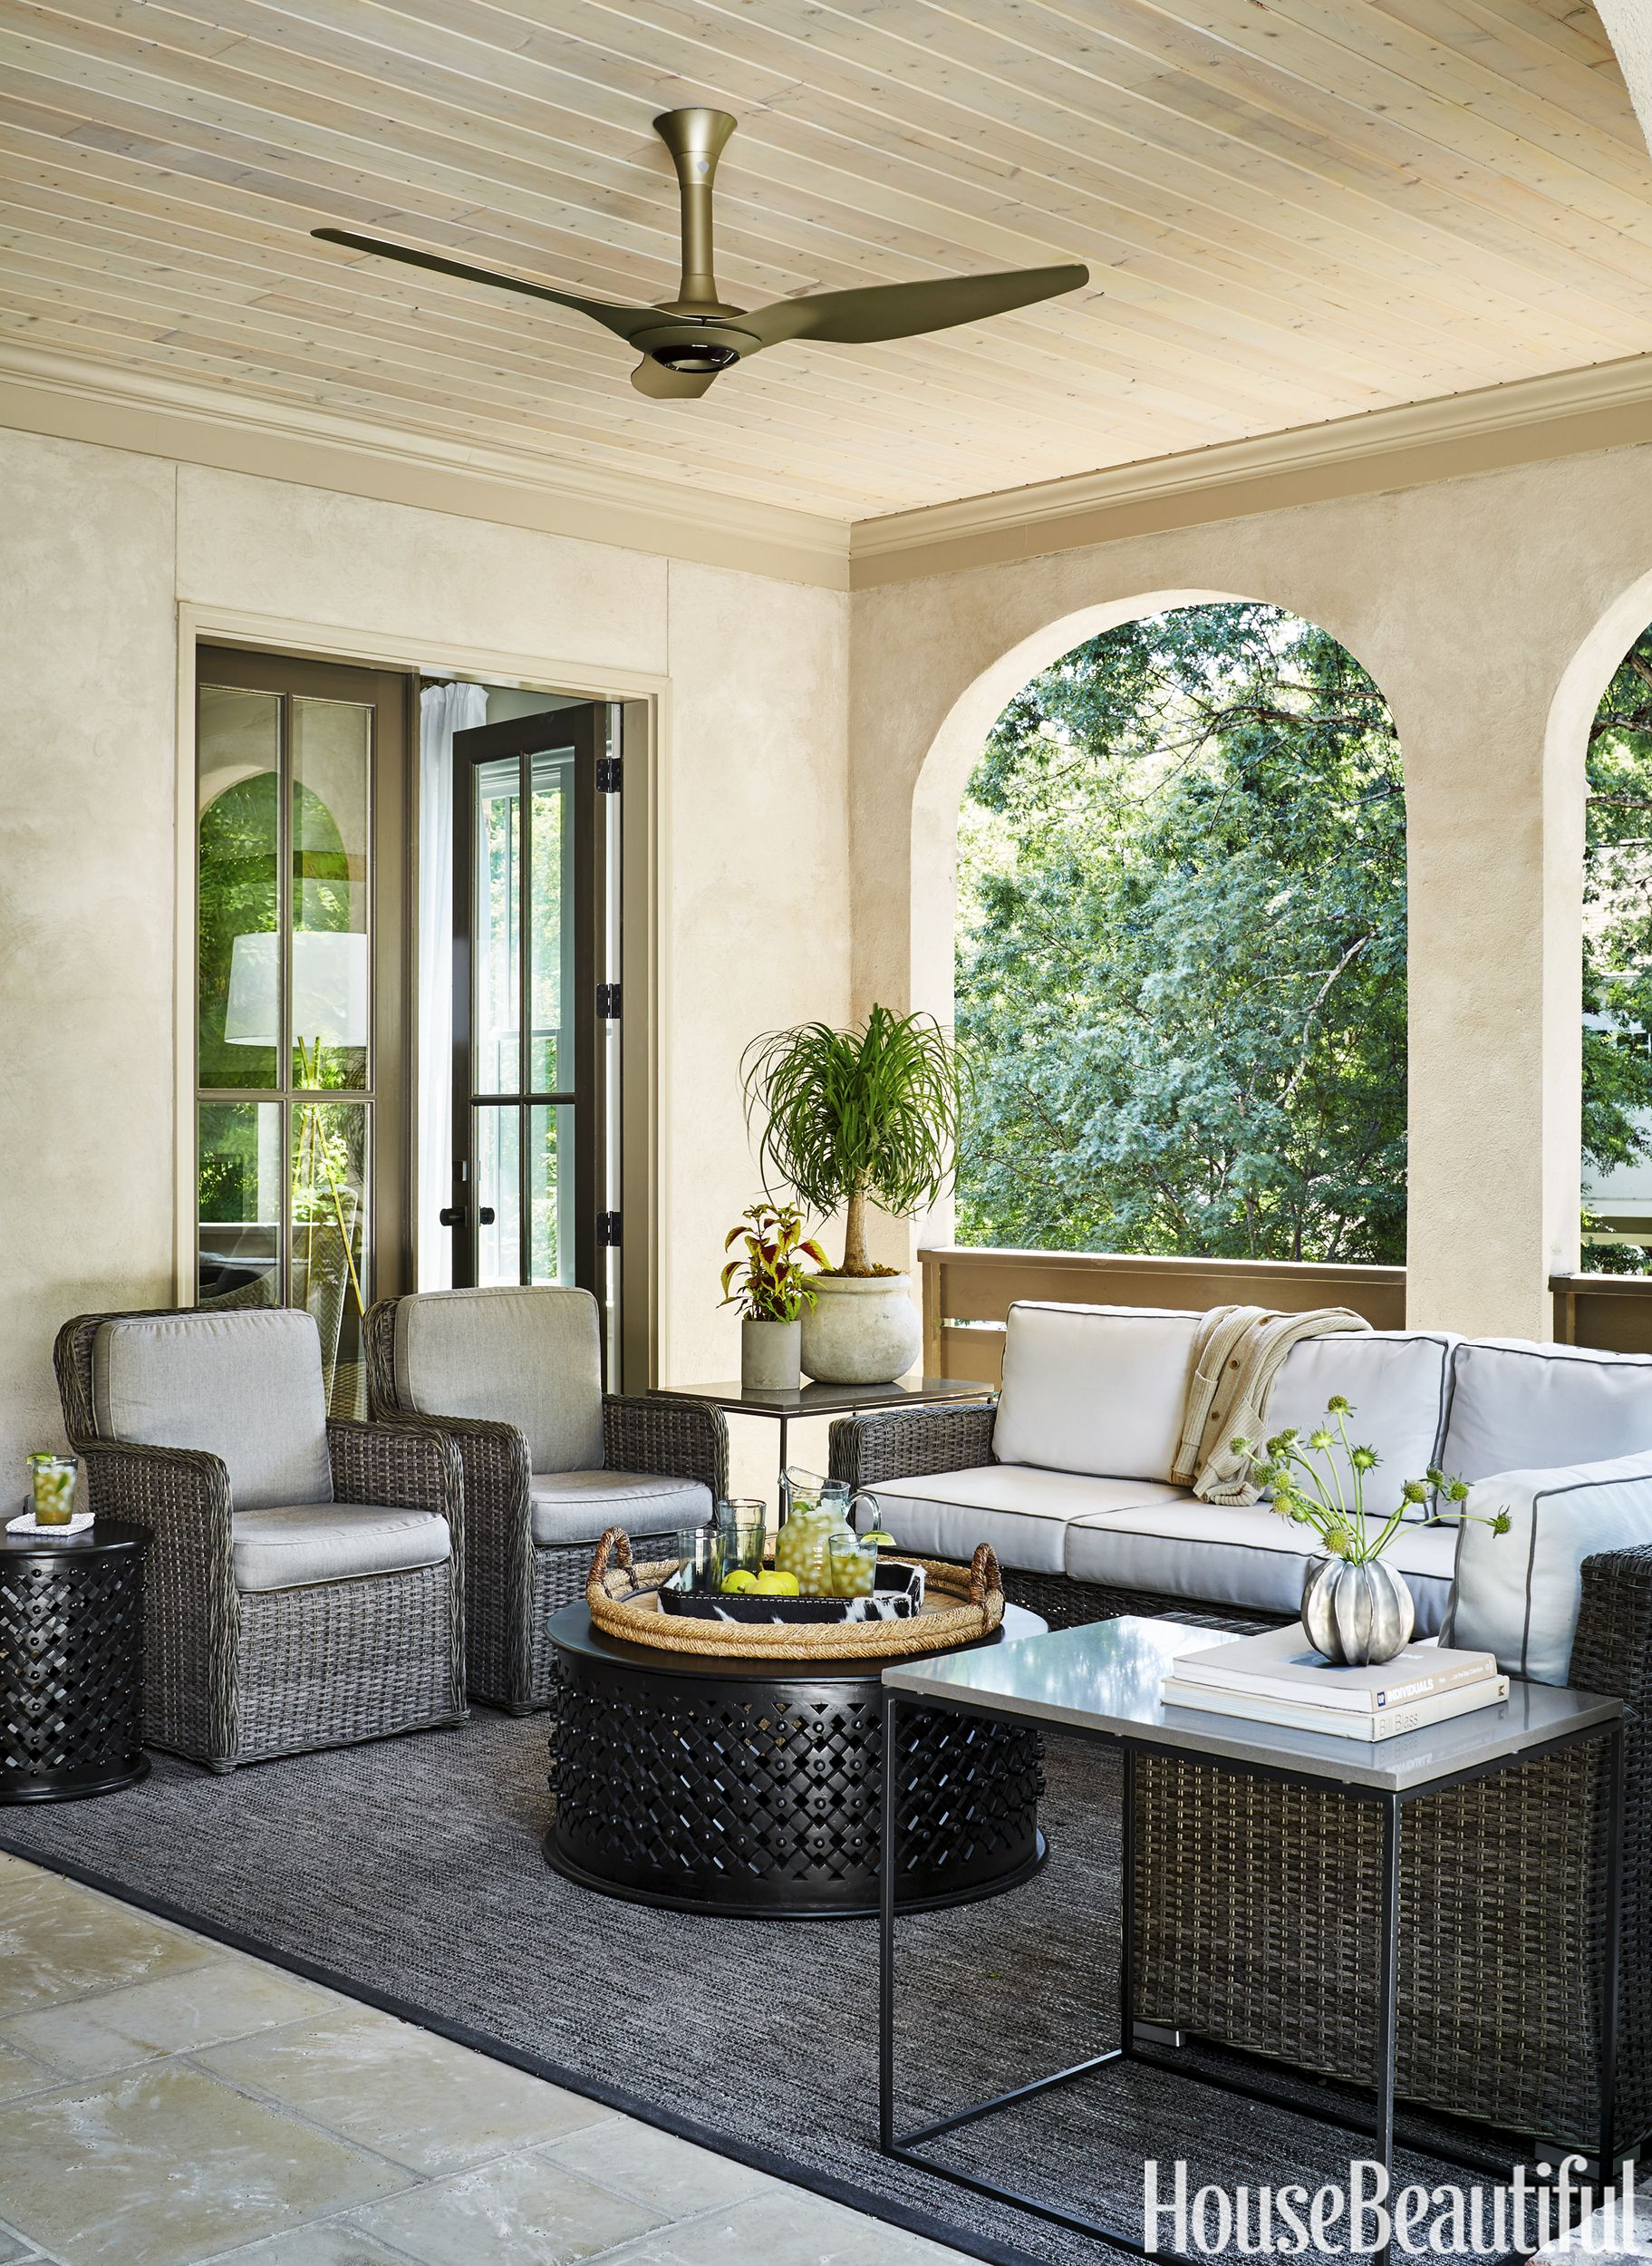 vuitton design decor and patio covered images of ideas outdoor for louis decorating